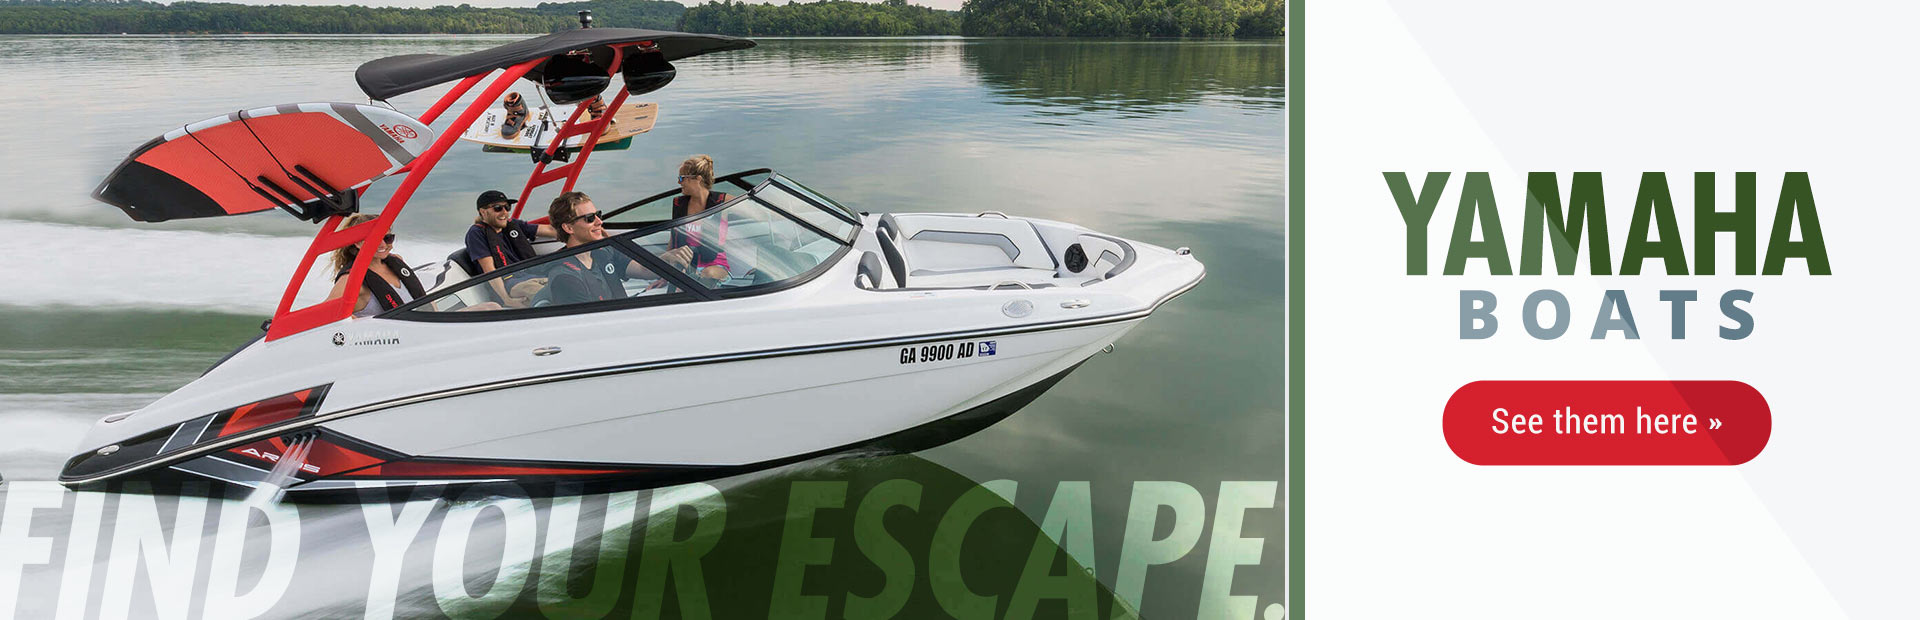 We sell and service boats including Bayliner, Yamaha Jet, Key West